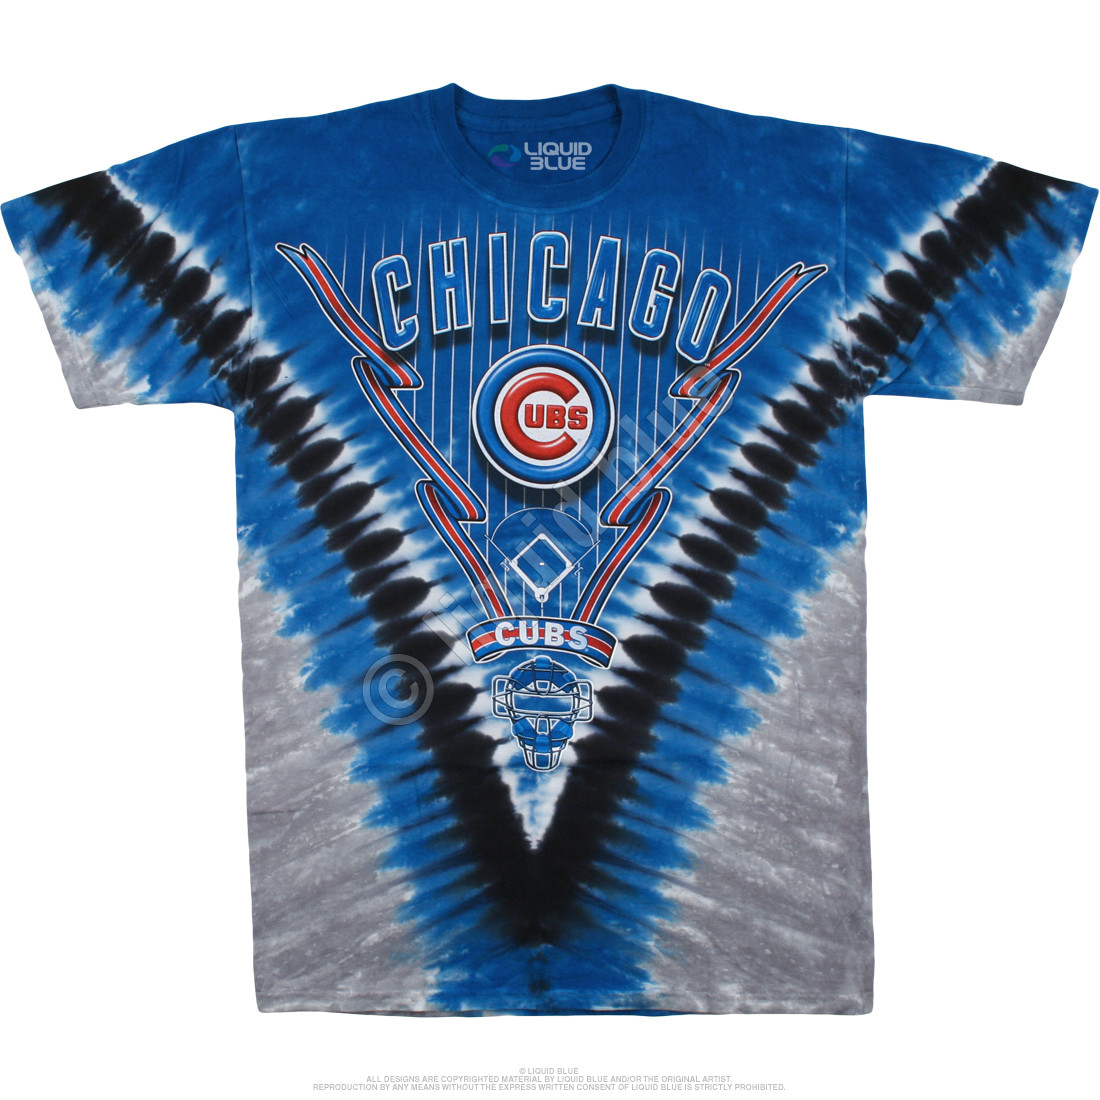 caeb2627ae4 MLB Chicago Cubs V Tie-Dye T-Shirt Tee Liquid Blue